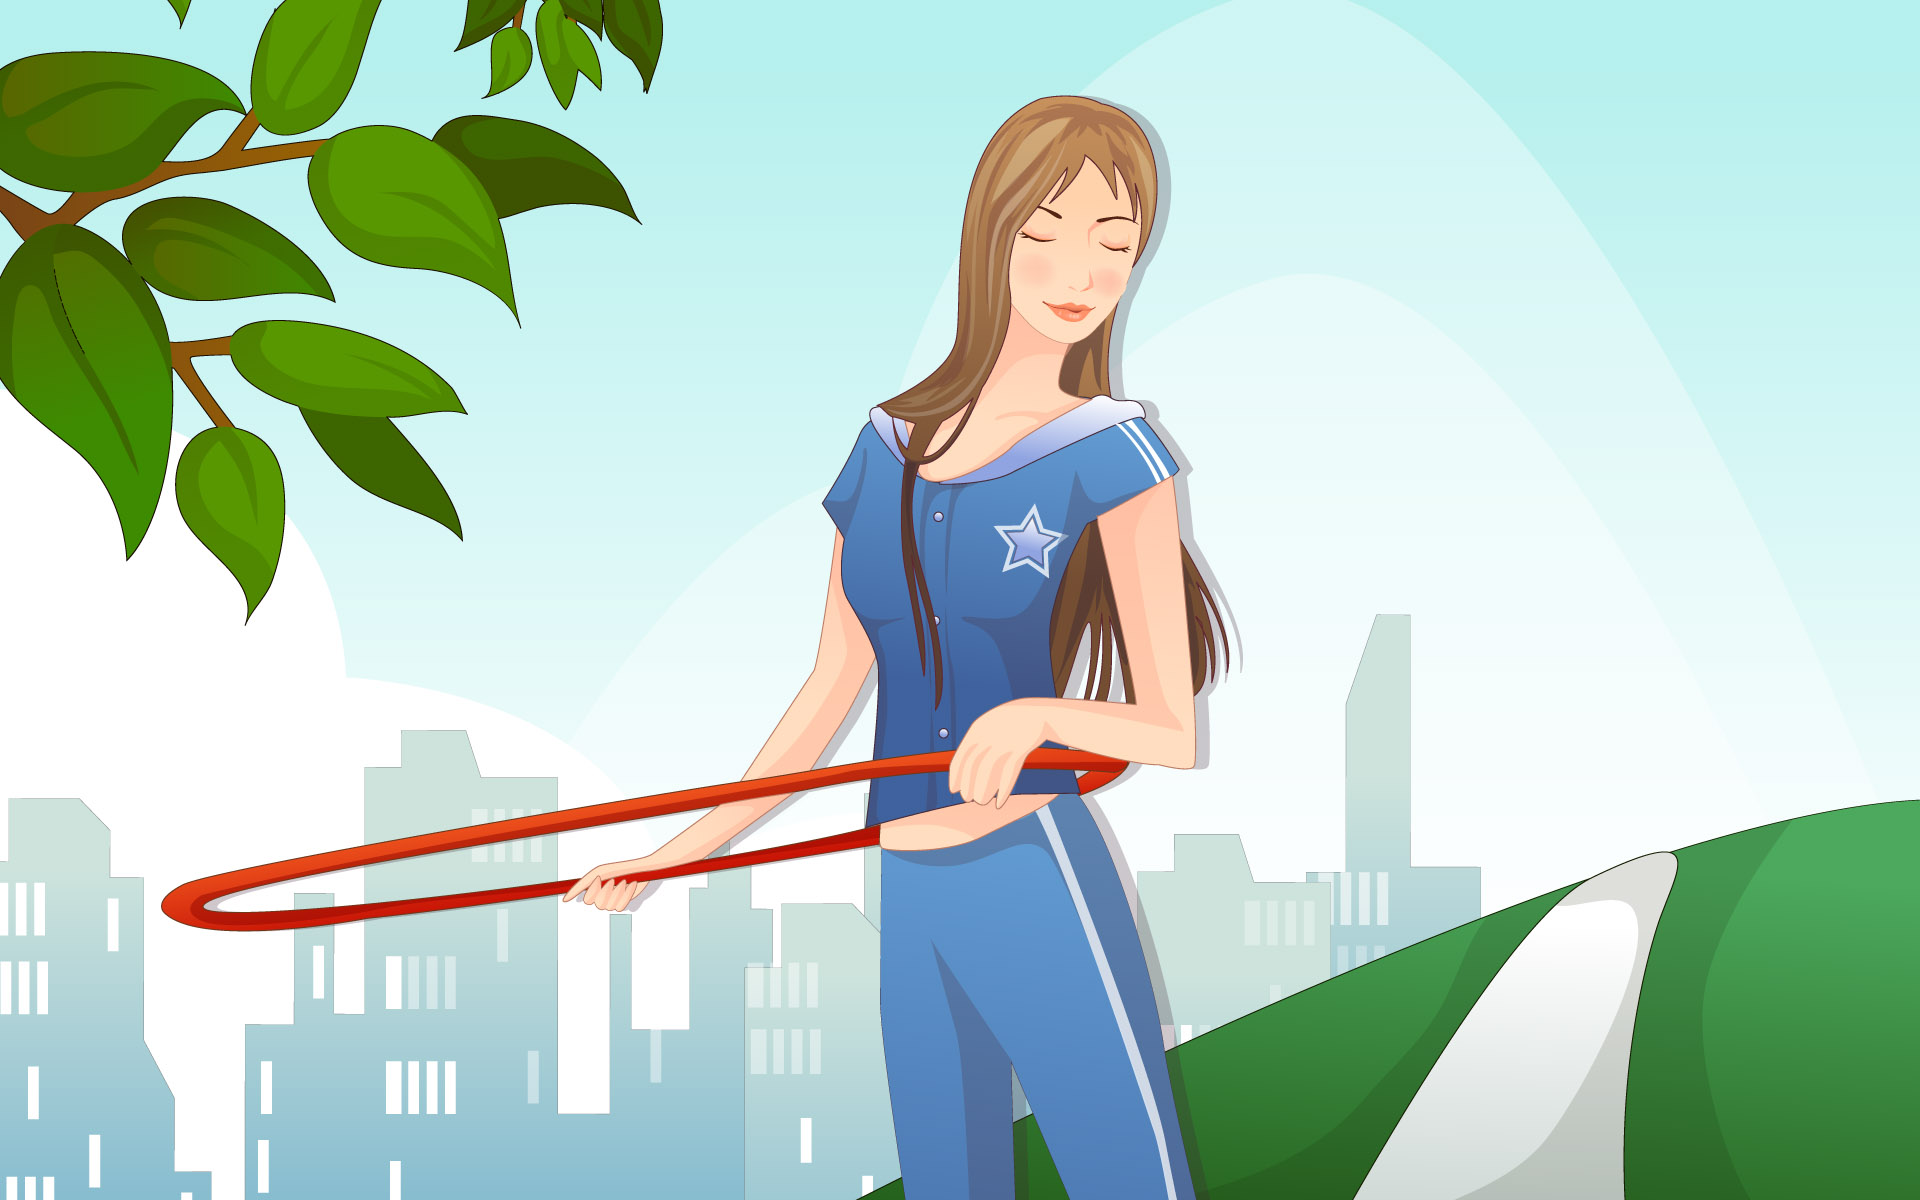 Sports Girl 12428 Sports Girls Wallpapers Cartoon Illustration